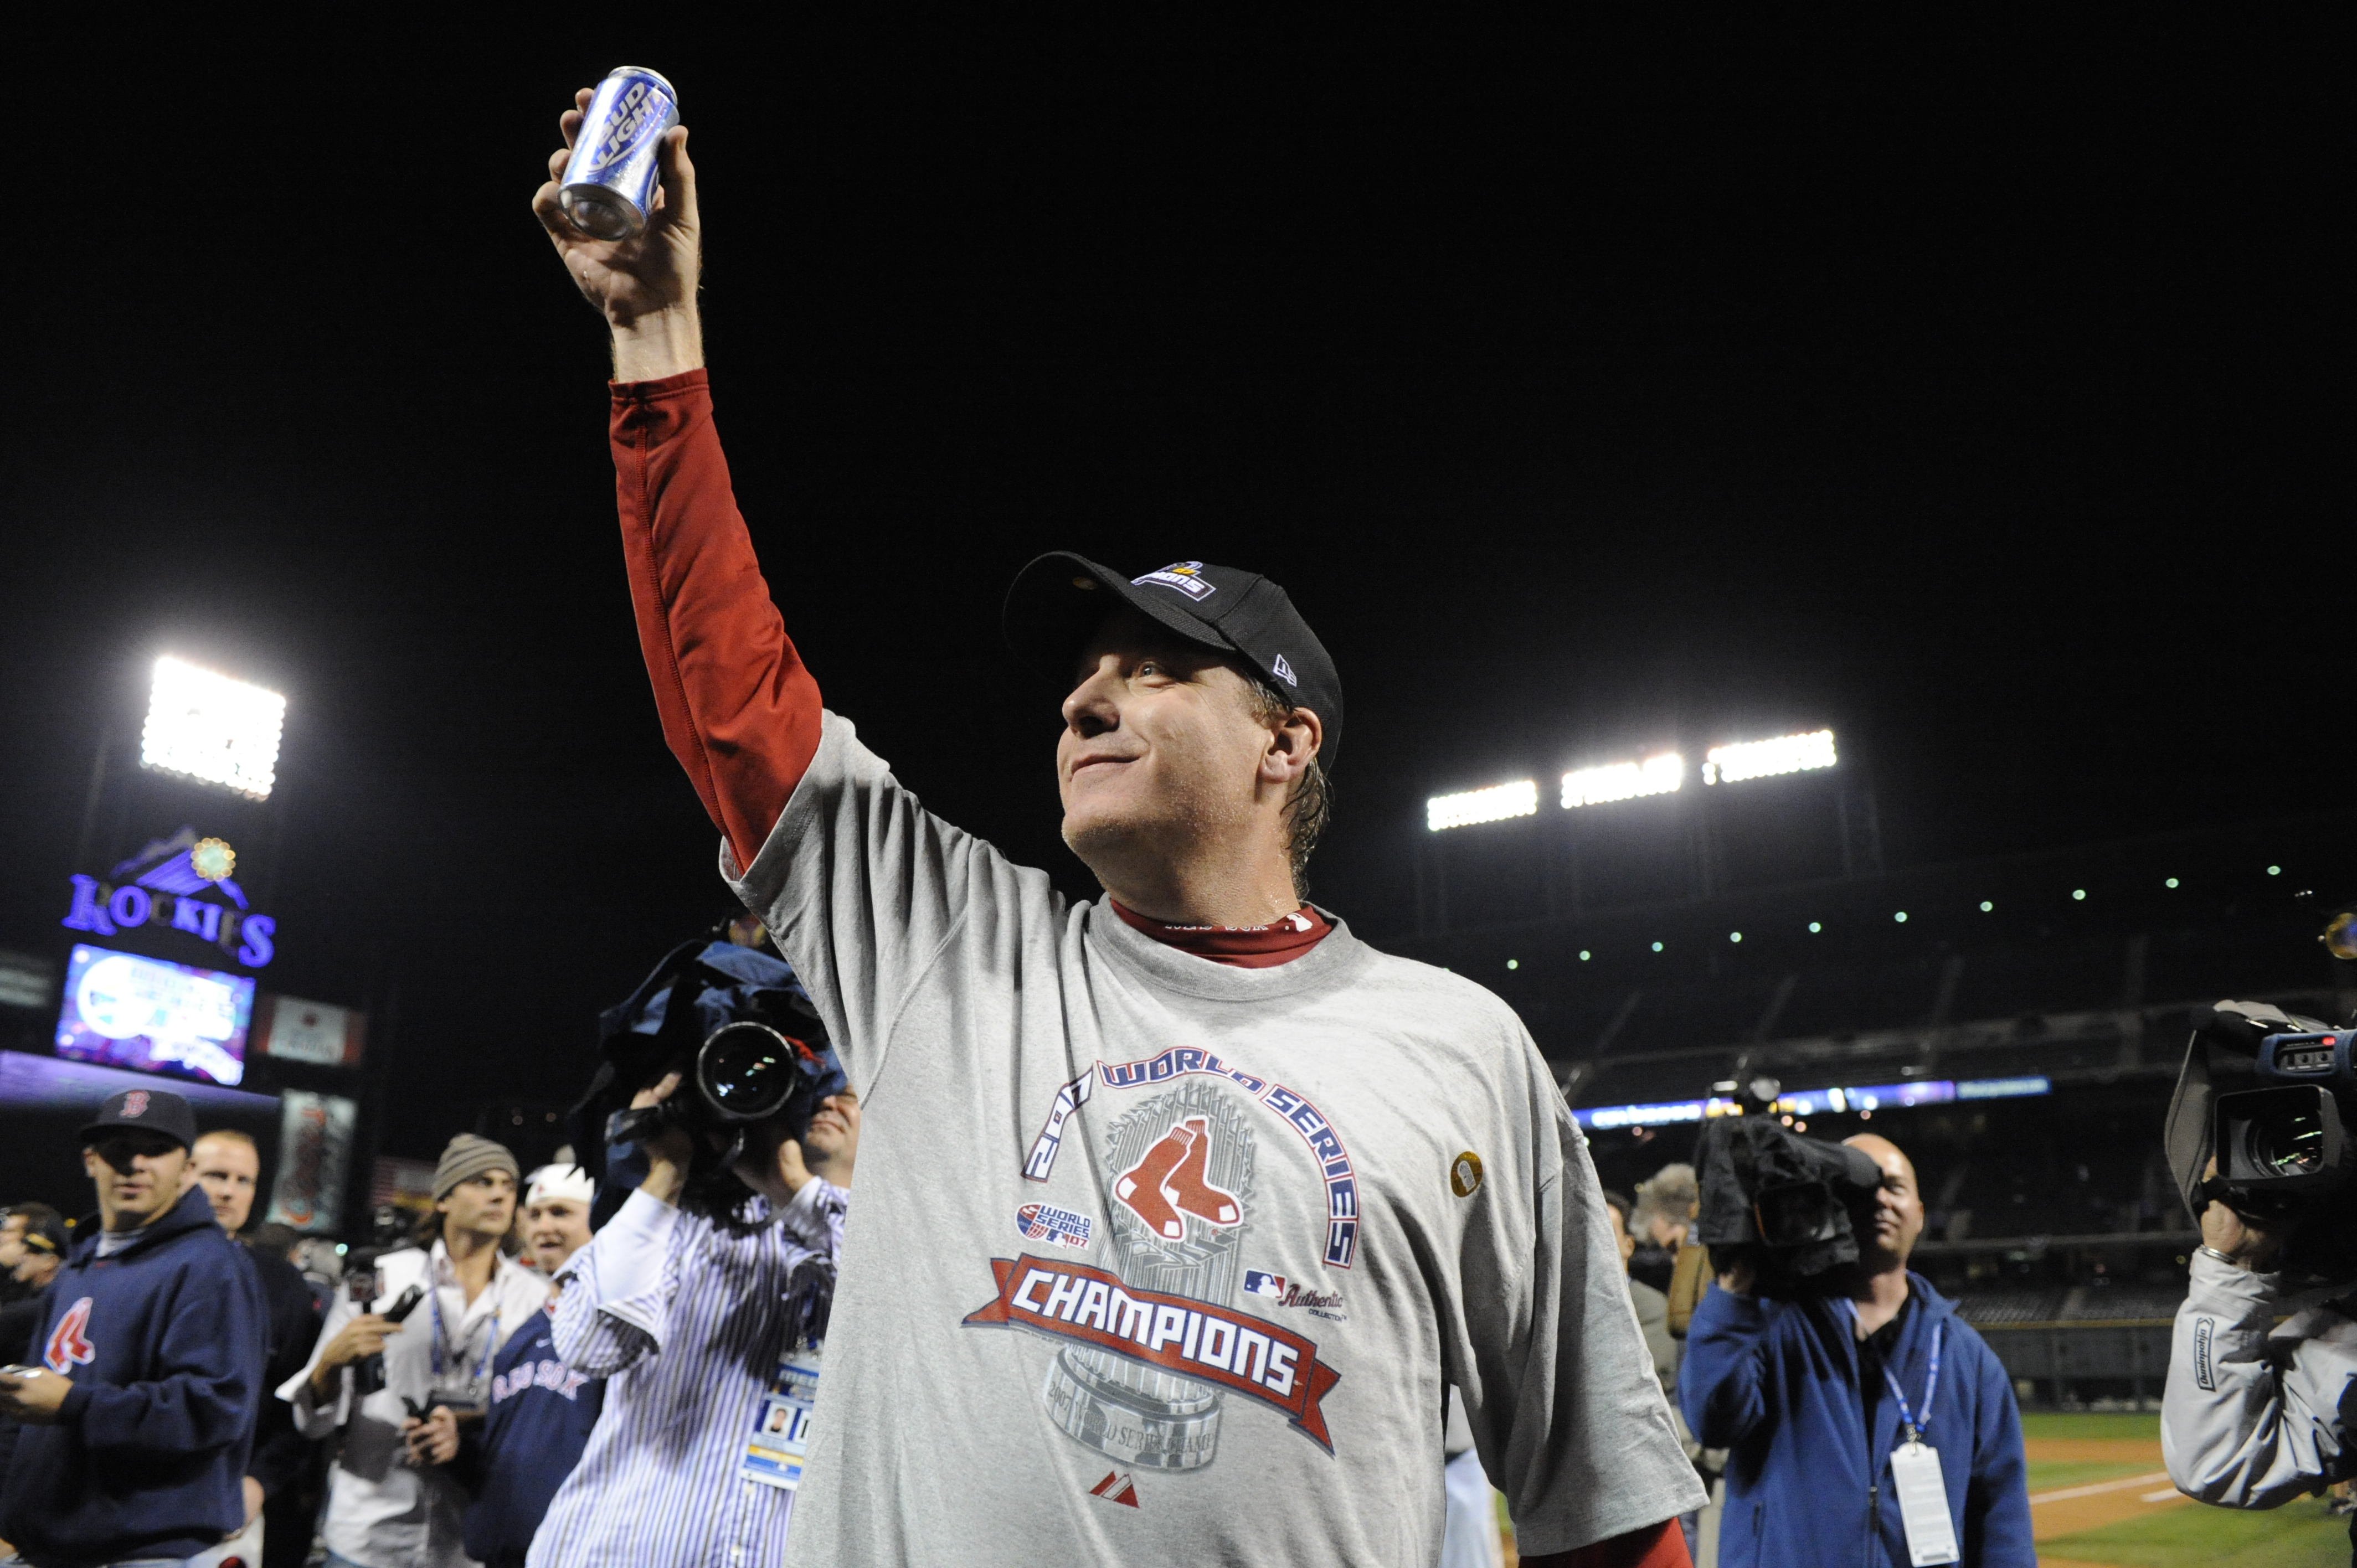 Red Sox Pitcher Curt Schilling holds a beer to the crowd, mostly Red Sox fans after the Sox won the series 4-0.